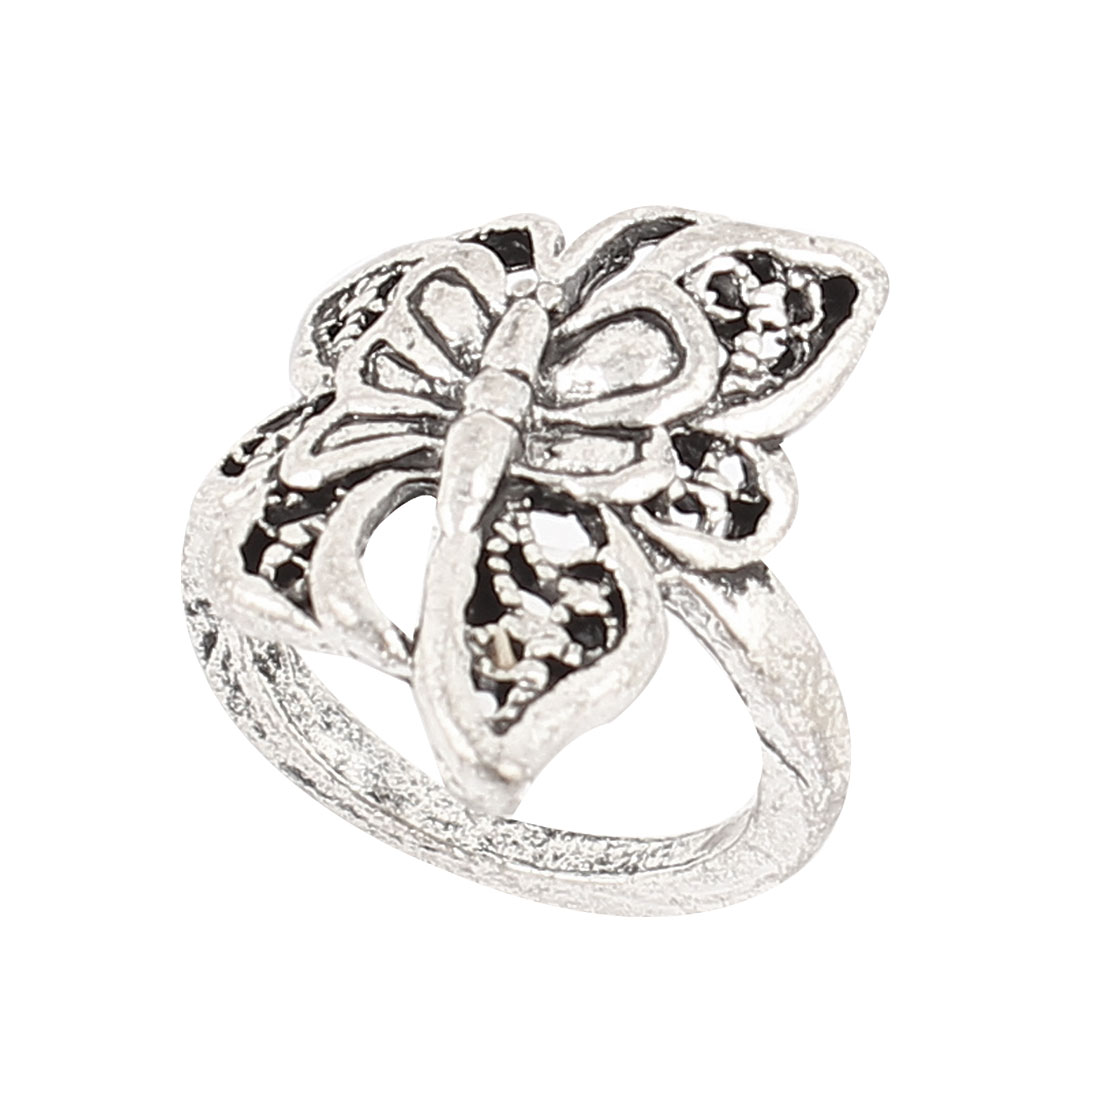 Silver Tone Metal Butterfly Shape Decor Finger Ring US 6 1/2 for Lady